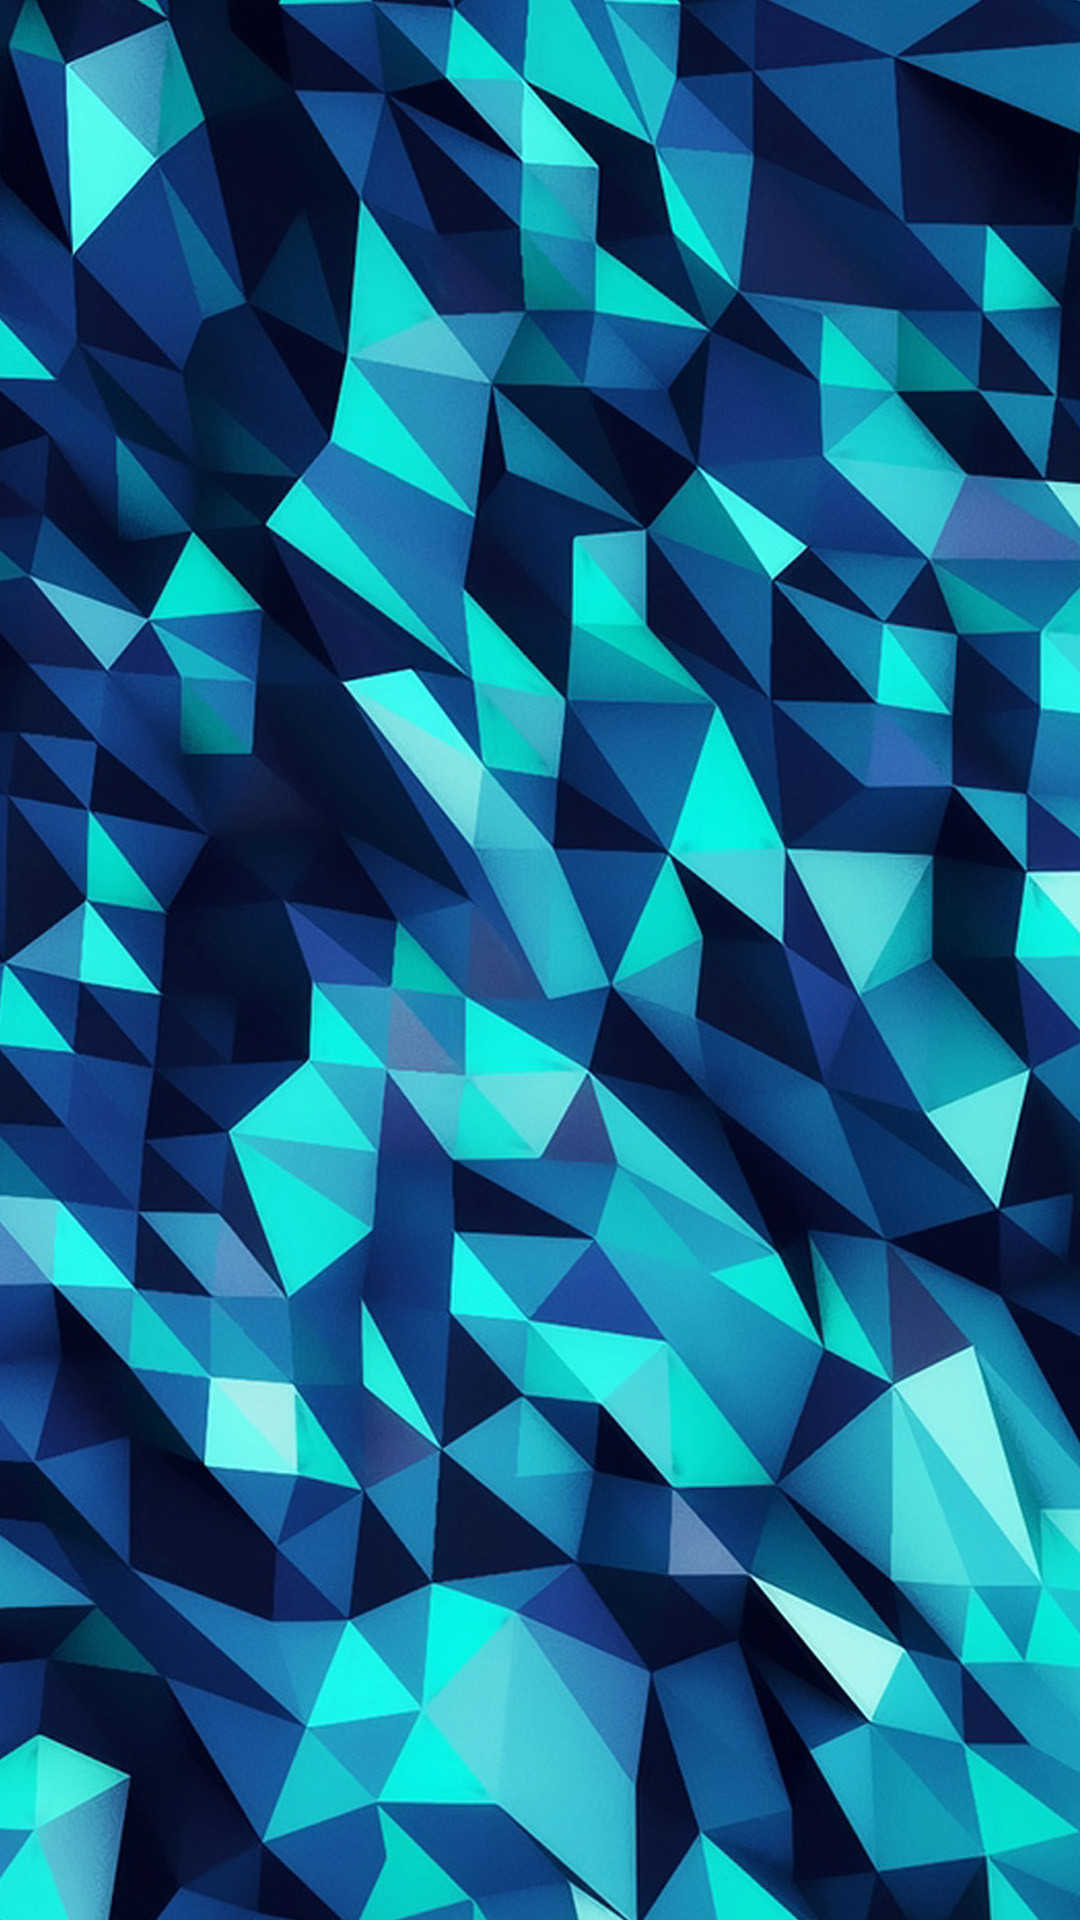 Res: 1080x1920, Download PreviewBlue Crystal Wallpaper